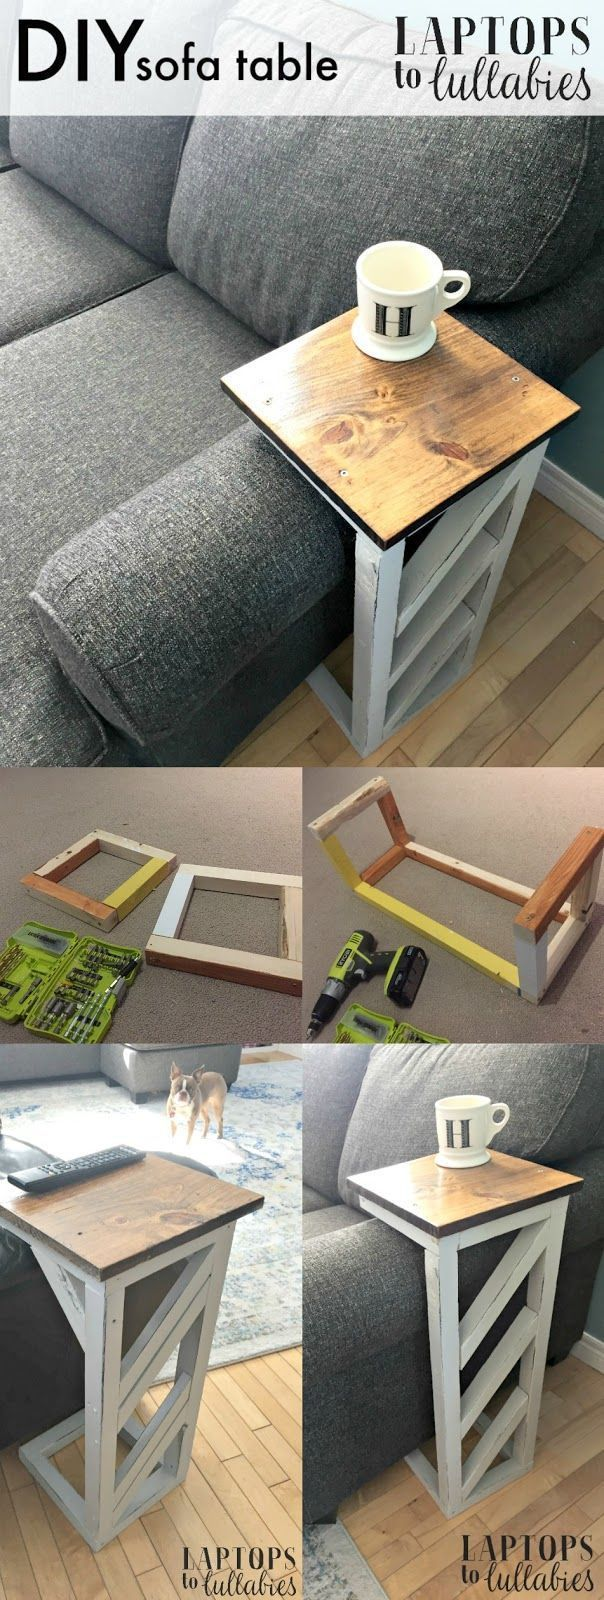 Top 100 DIY Furniture Ideas